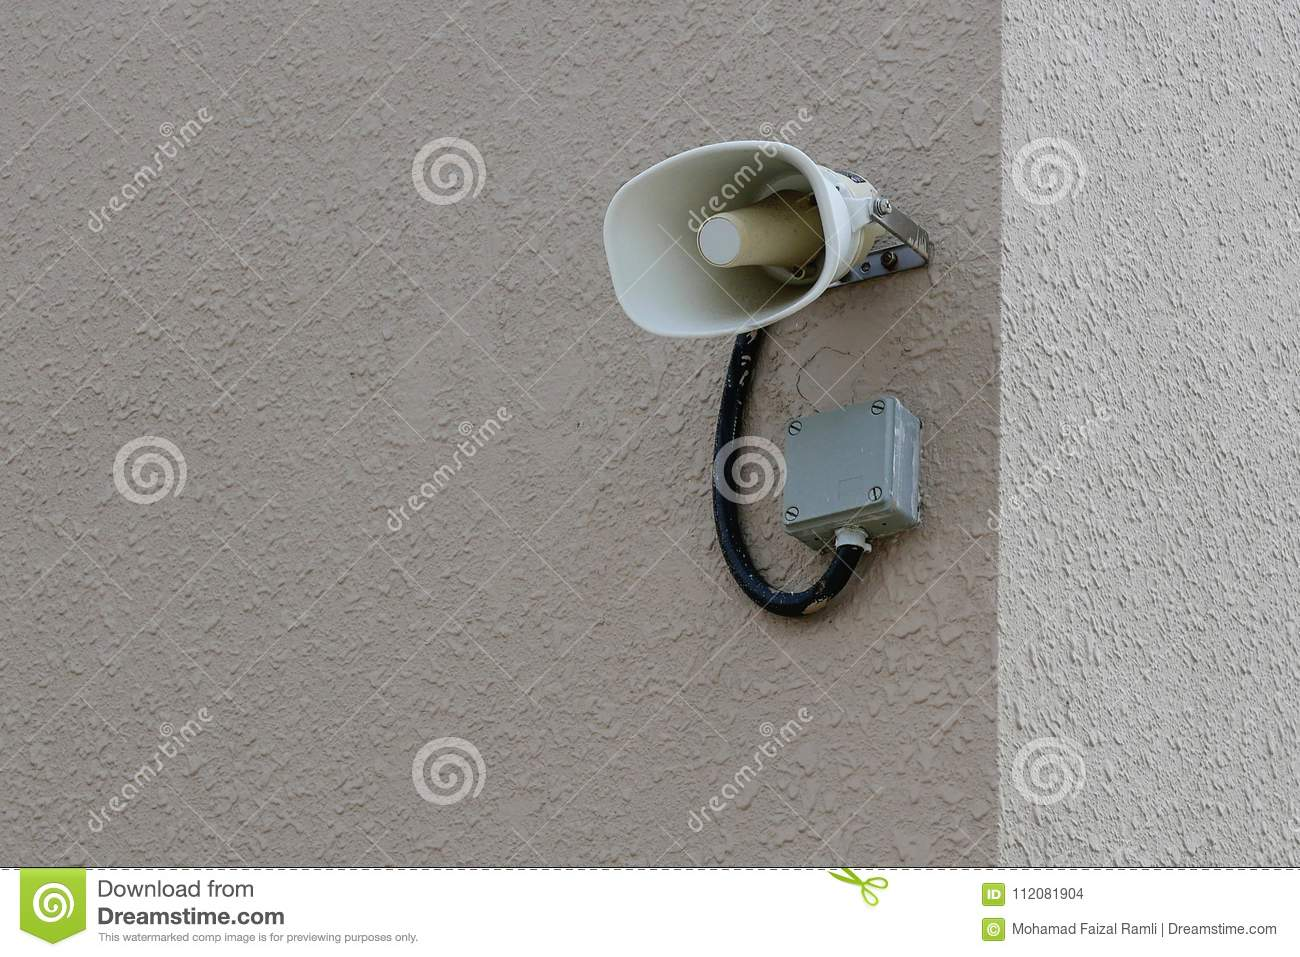 Loudspeaker or megaphone attached to wall. Copy space for text or logo